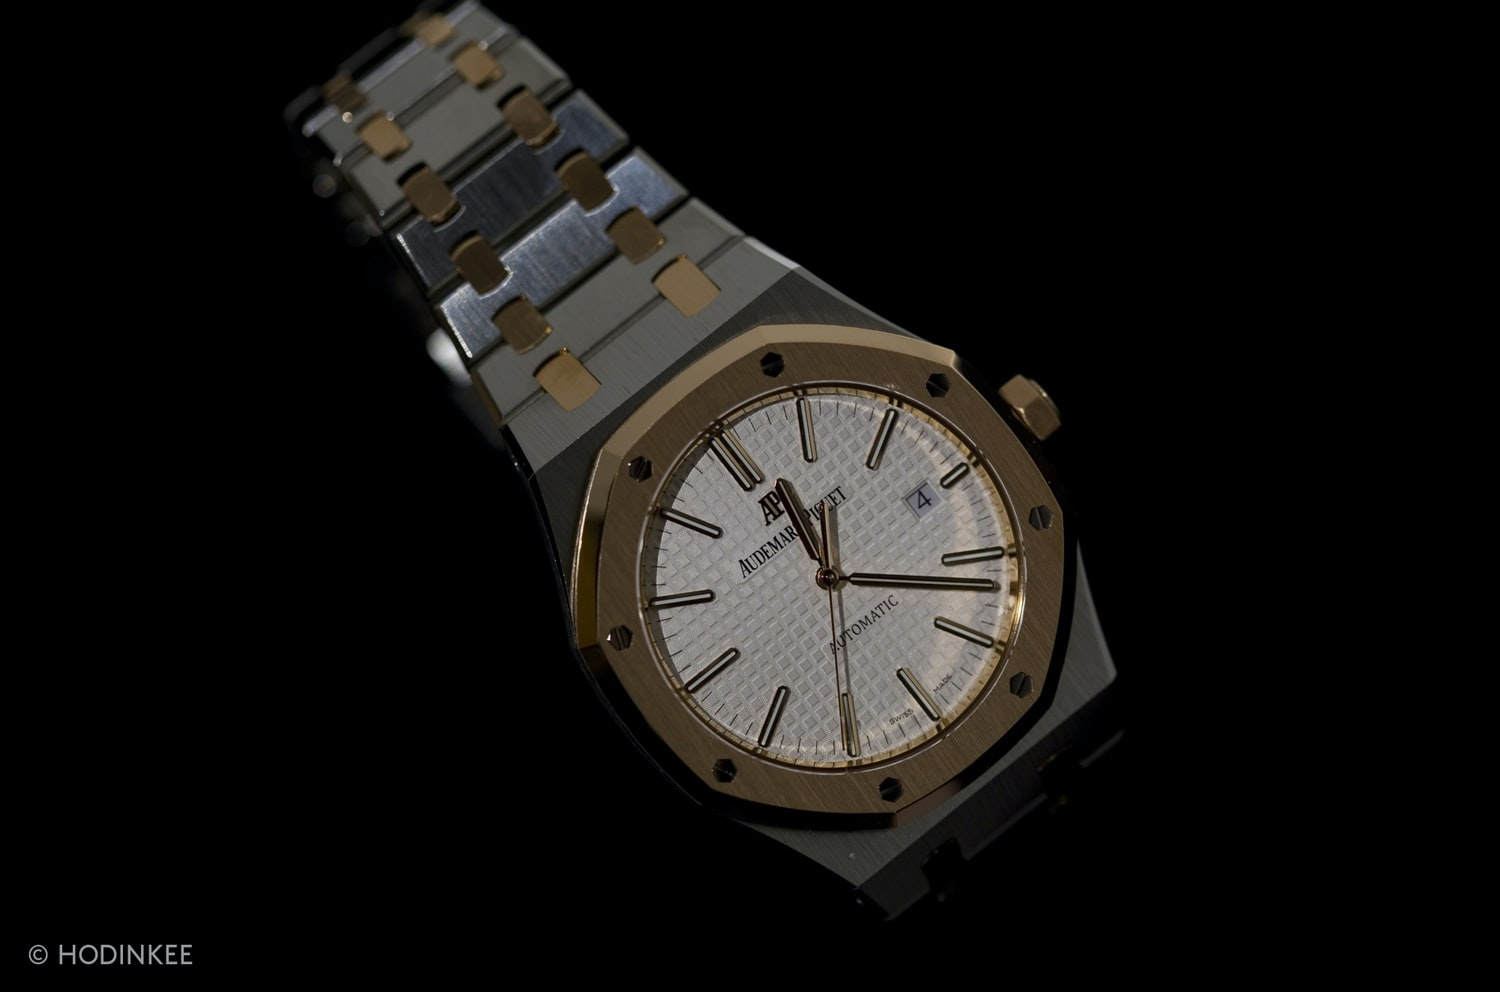 Watches that look like audemars piguet royal oak 11